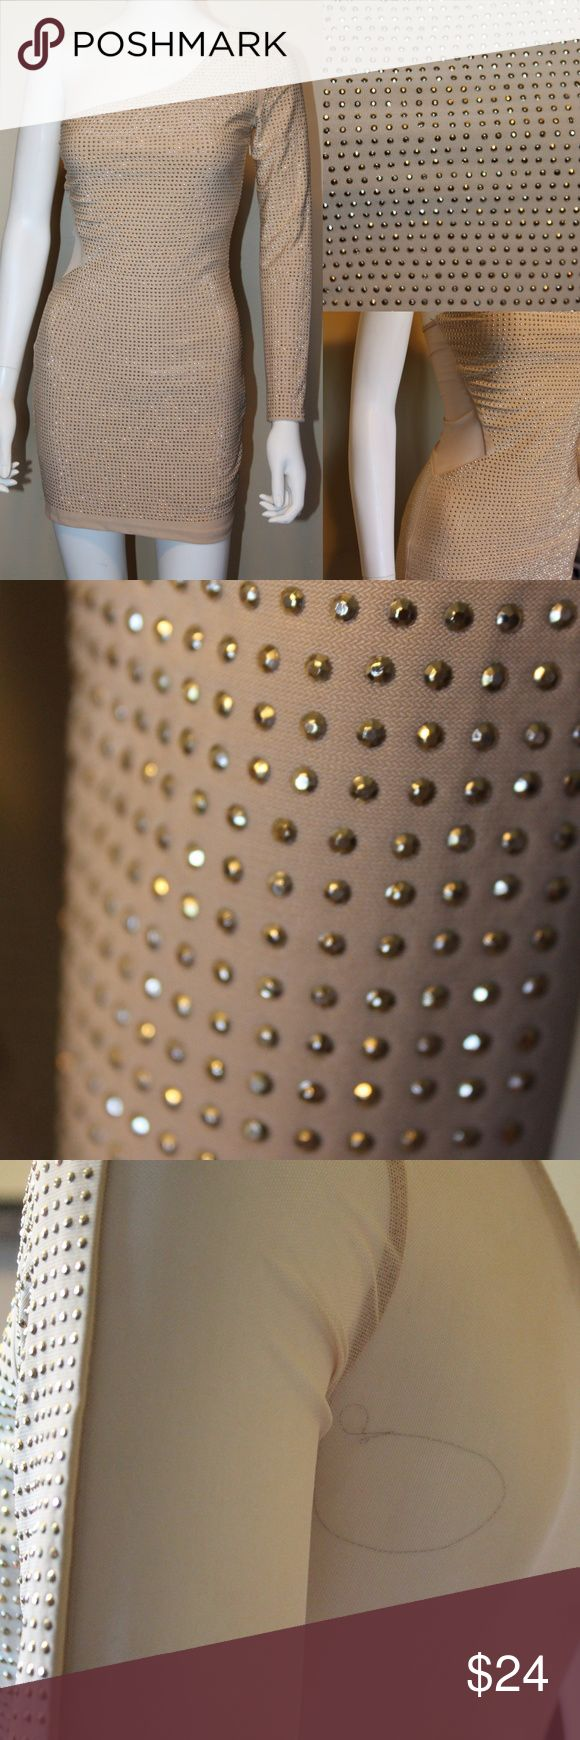 NUDE Tone One Shoulder gold studded dress Gold studded one shoulder dress all over studding back has sheer nude insertvery sxy and very flattering great dress for your bachelorette party or girls weekend in Vegas Unbranded Dresses One Shoulder